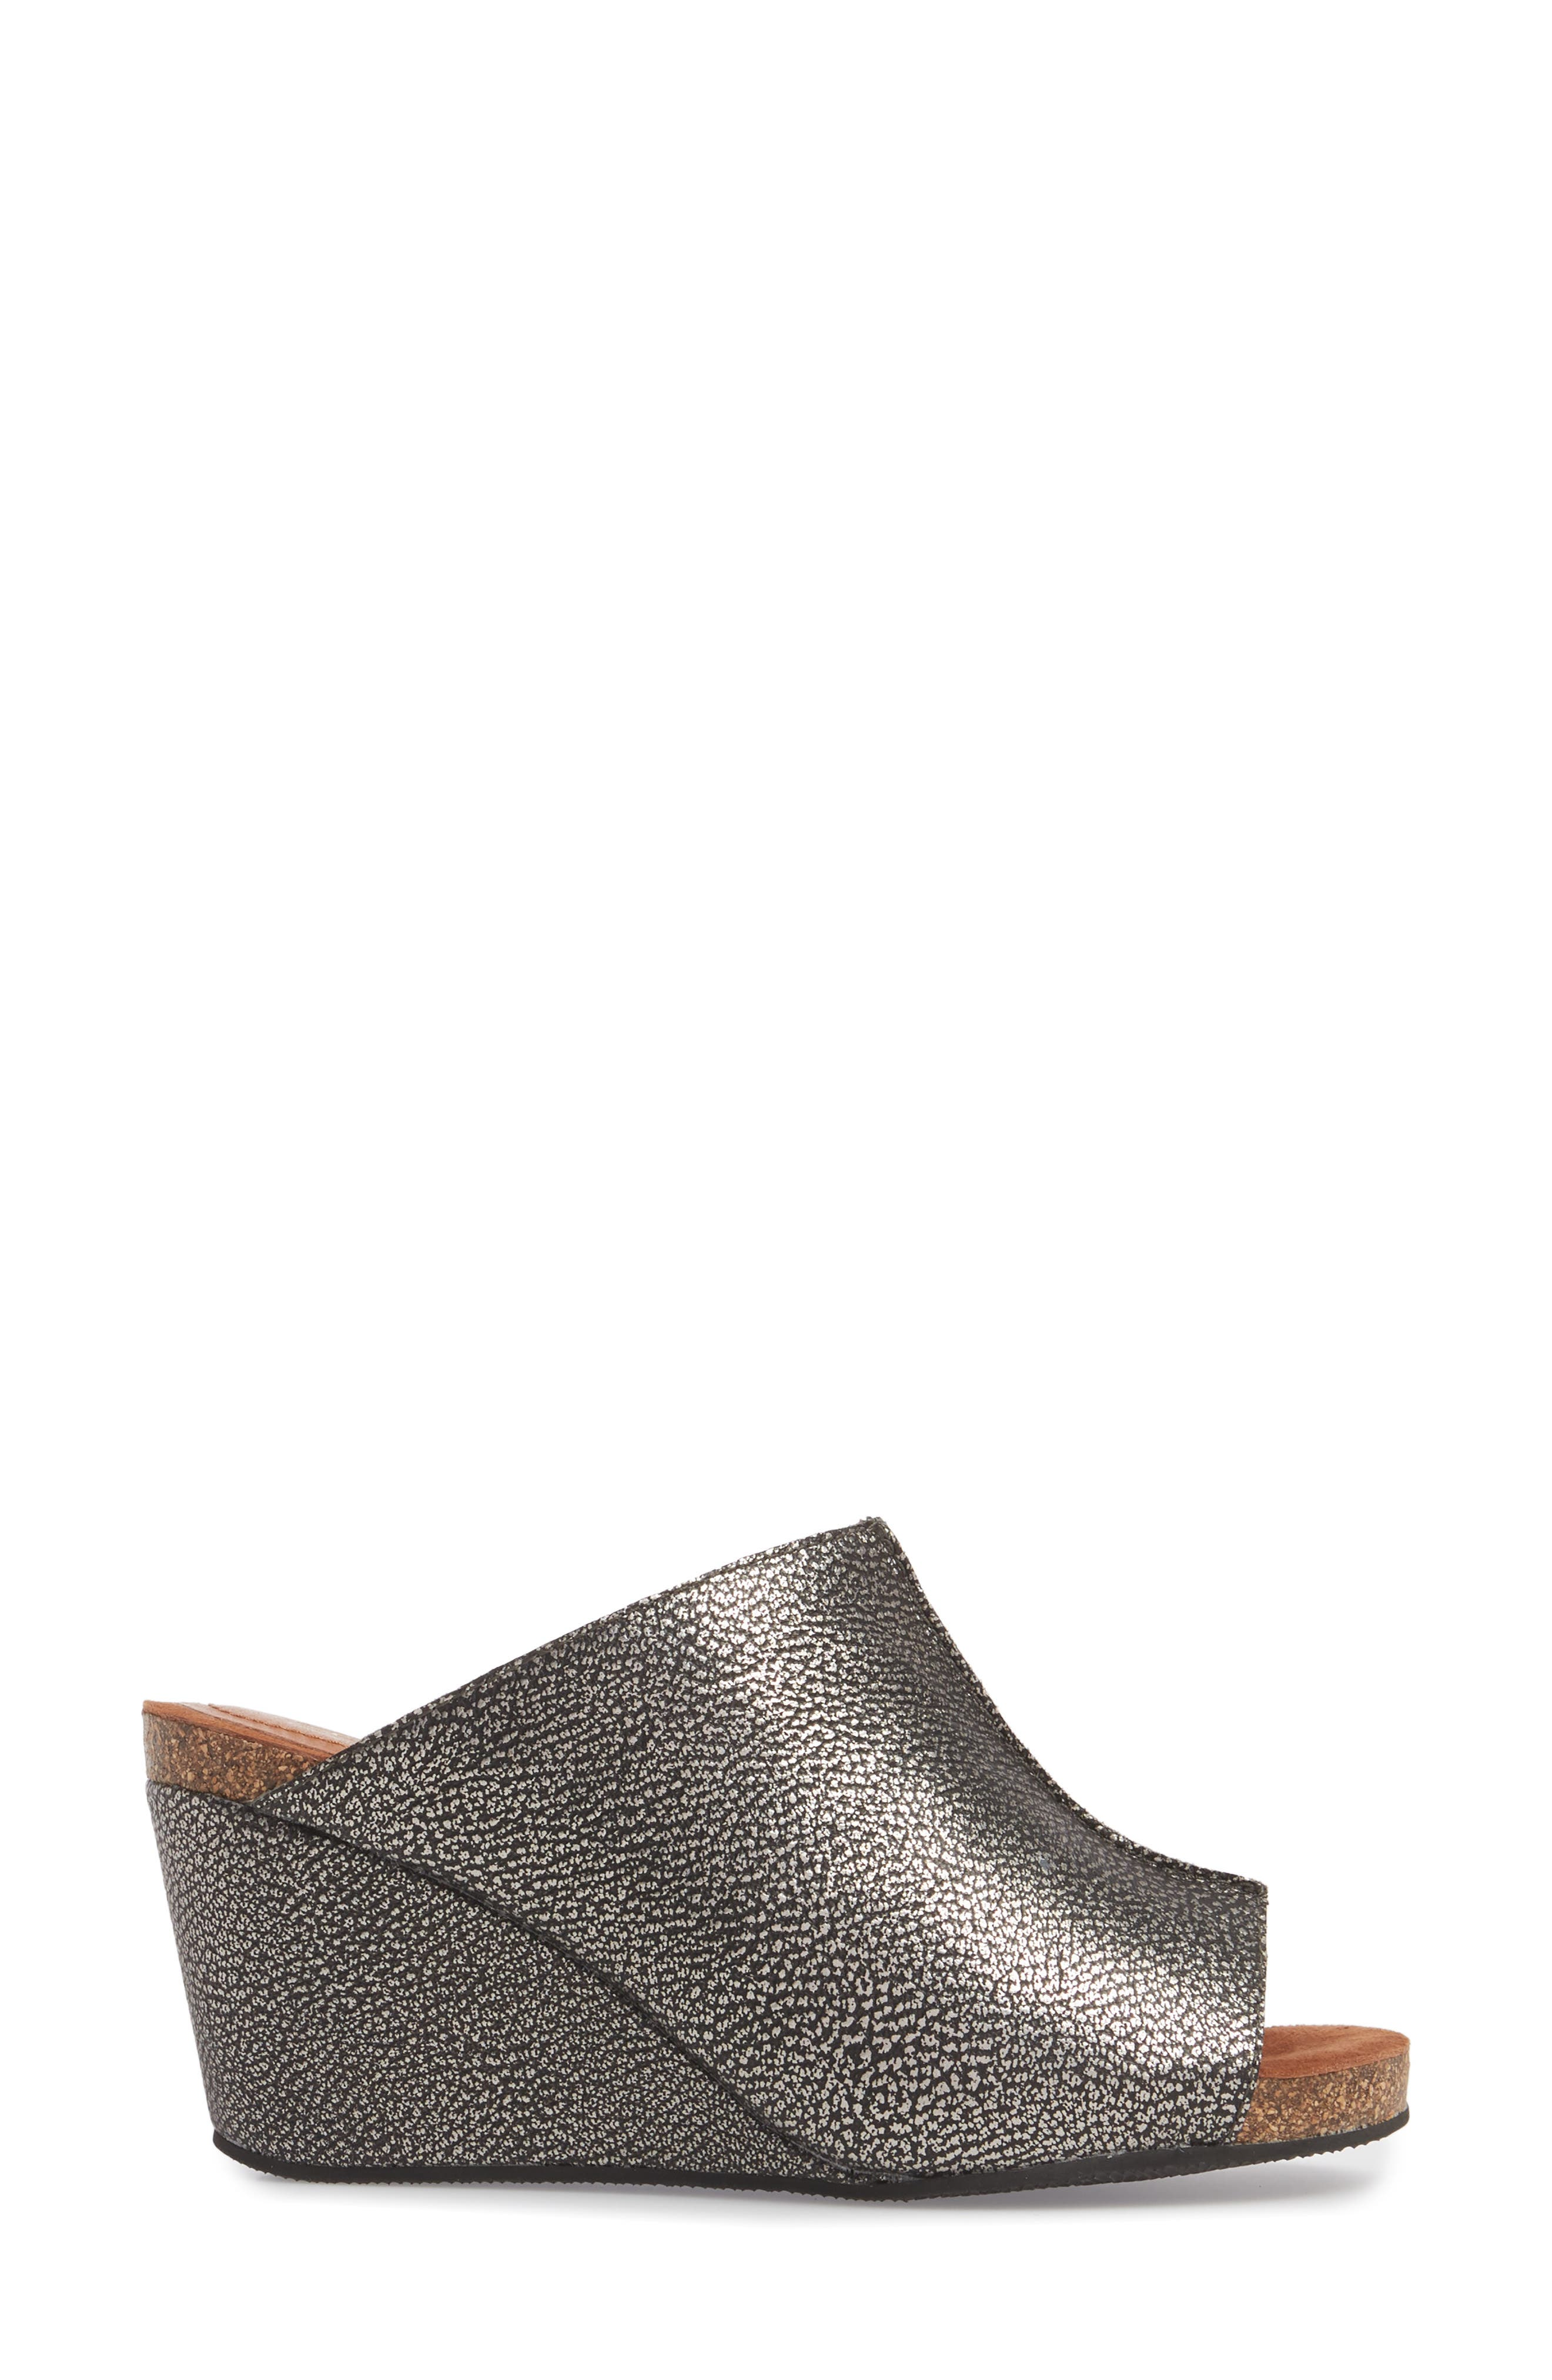 SUDINI, 'Bailey' Suede Wedge, Alternate thumbnail 3, color, PEWTER LEATHER